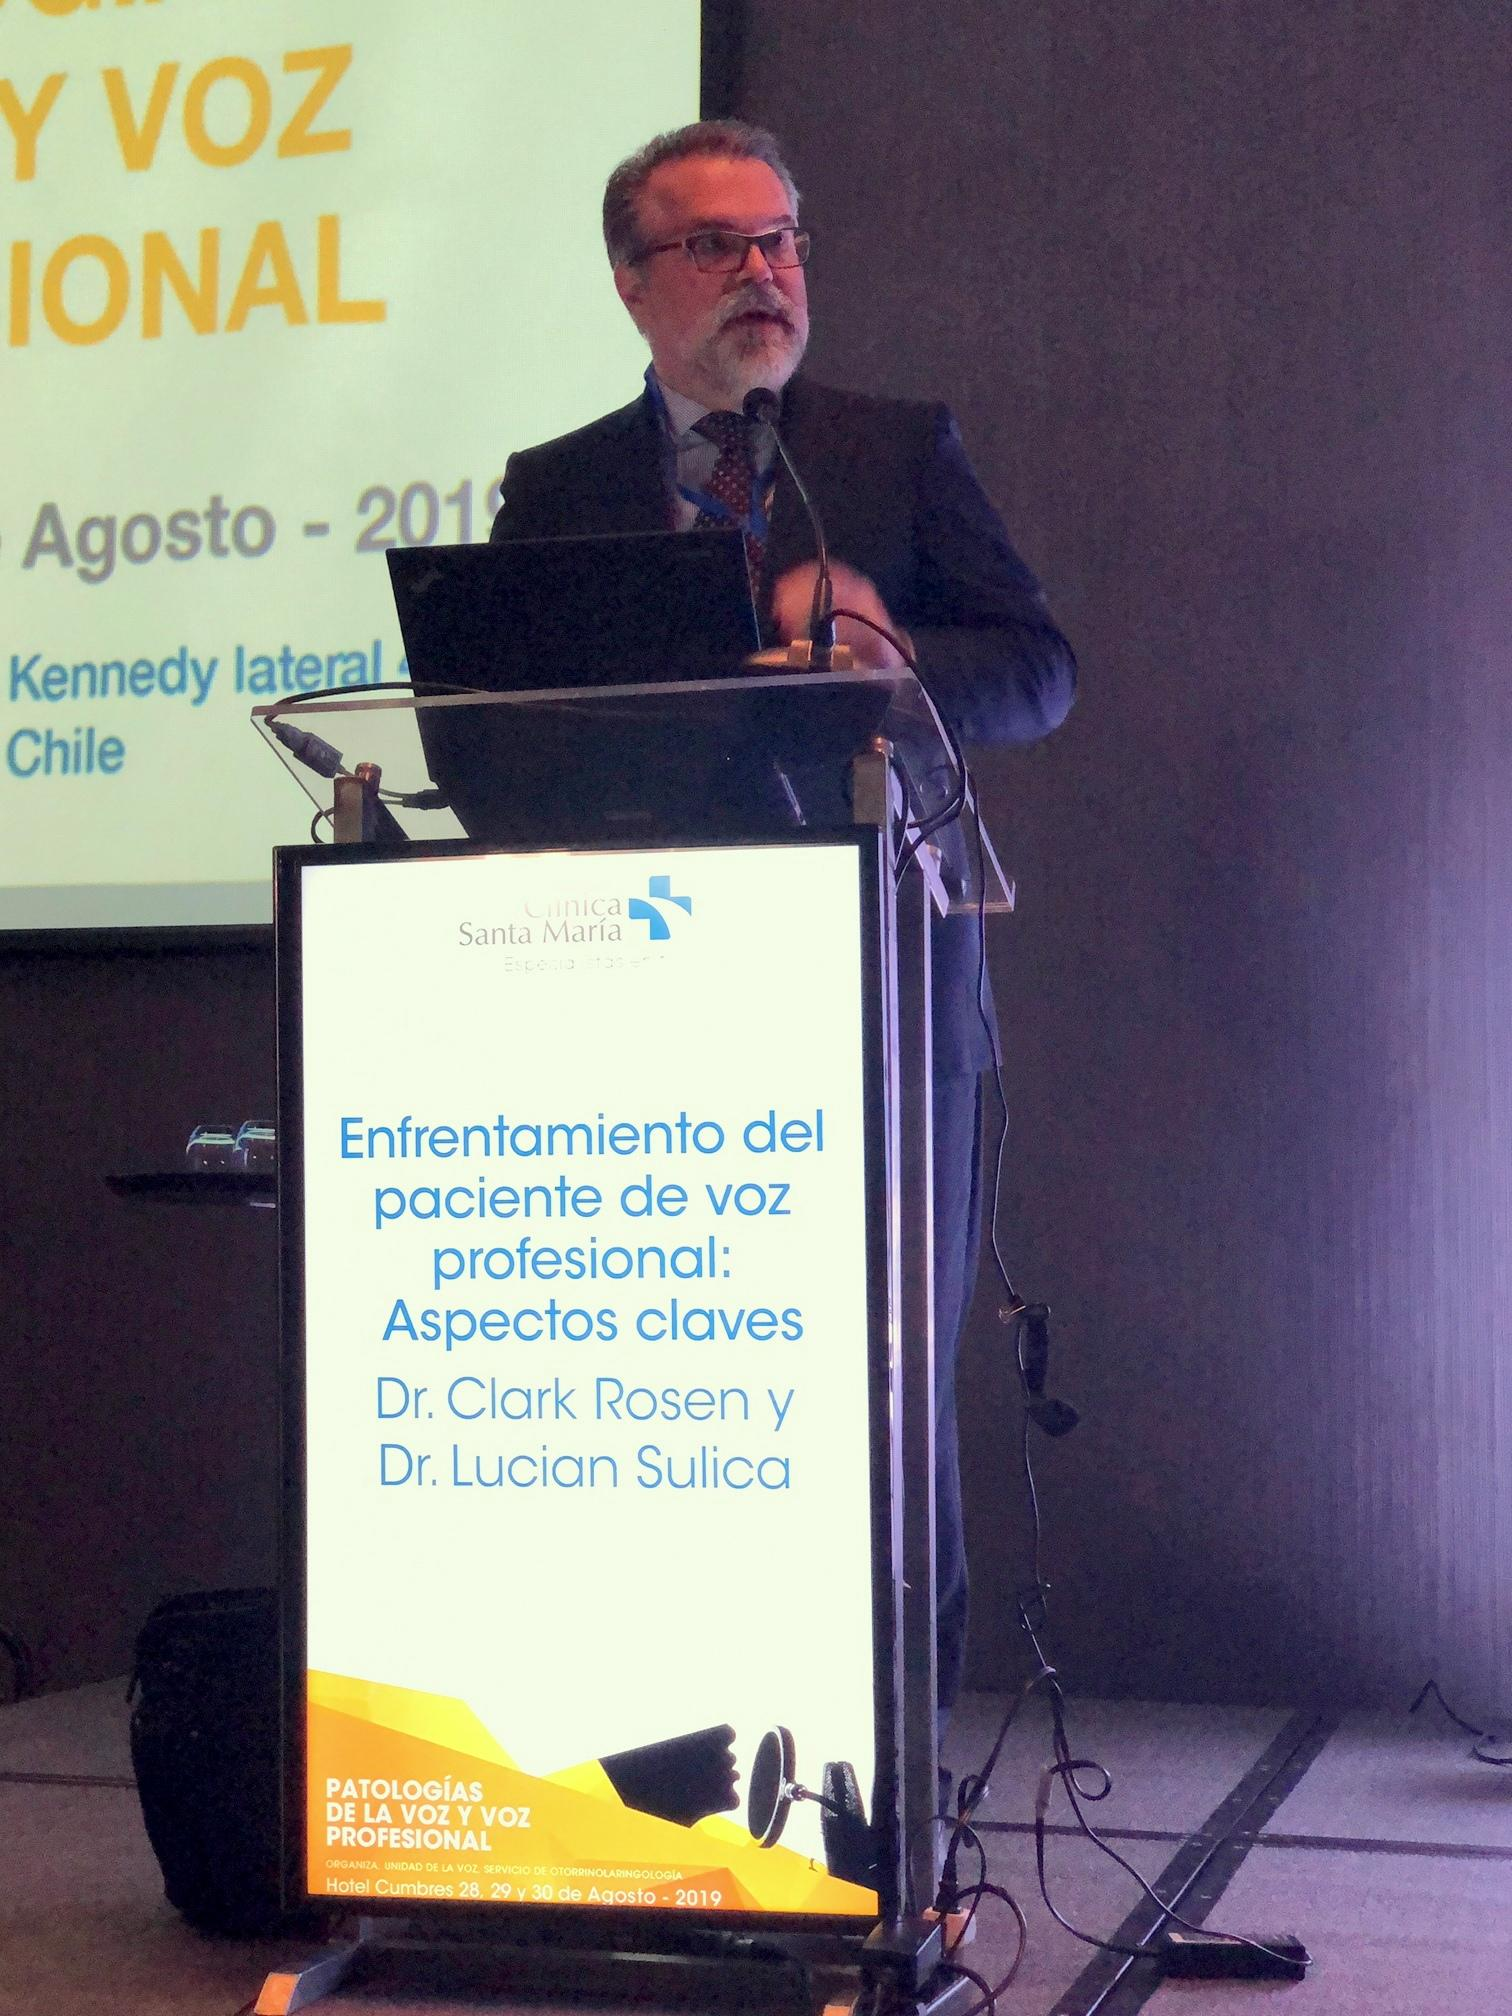 Lucian Sulica, MD discusses injuries in vocal performers in Santiago, Chile